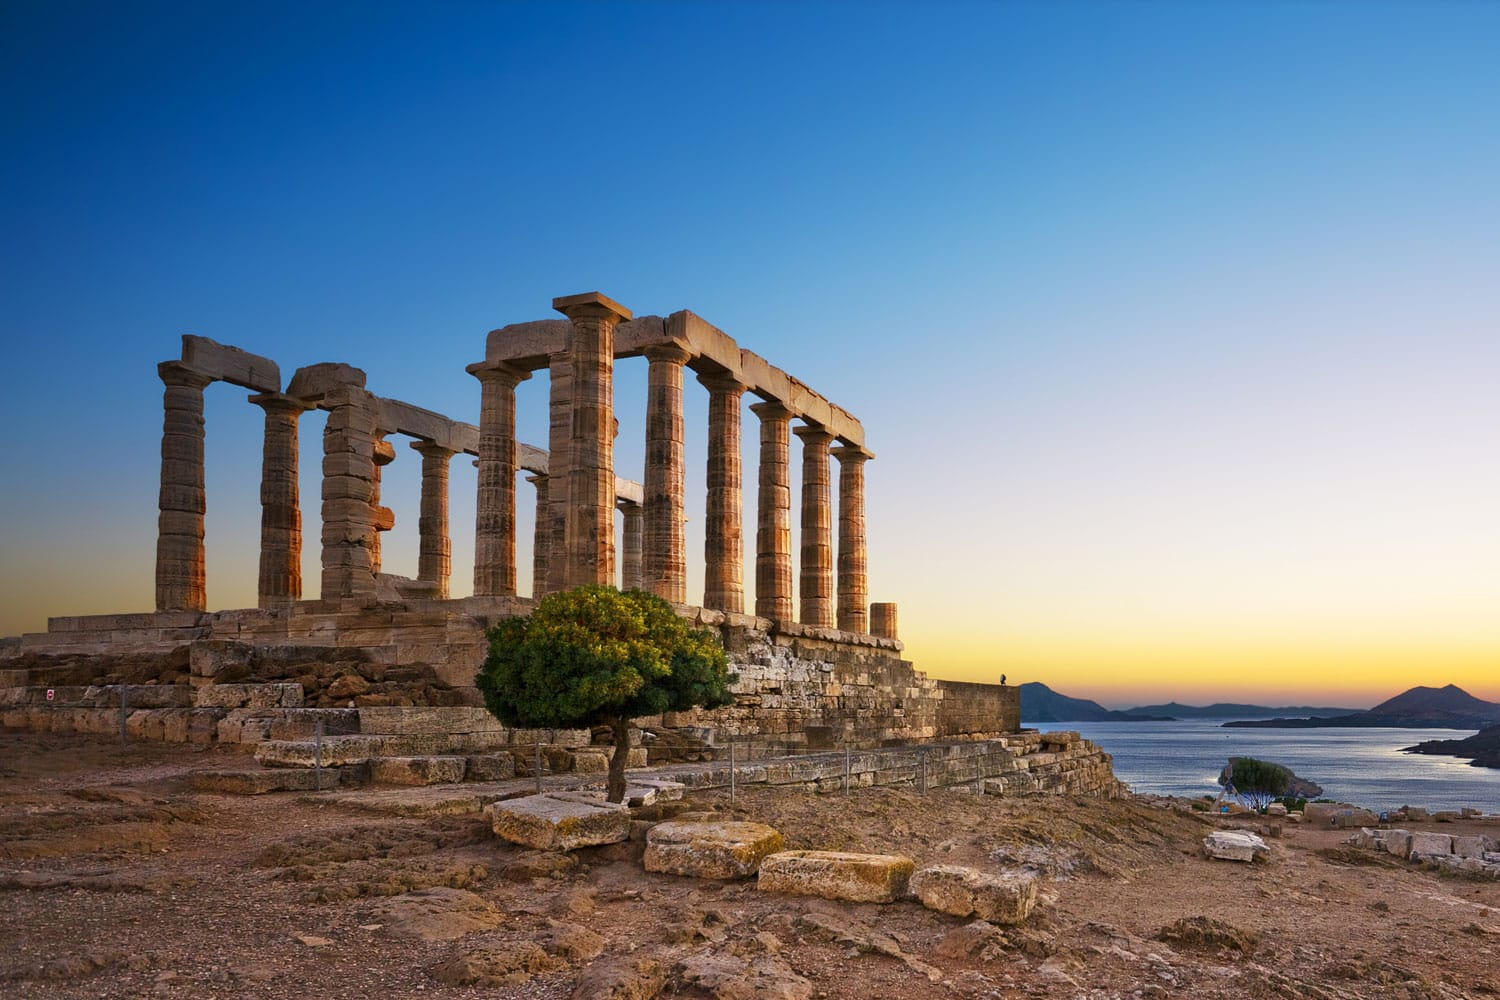 Ruins of an ancient Greek temple of Poseidon after sunset